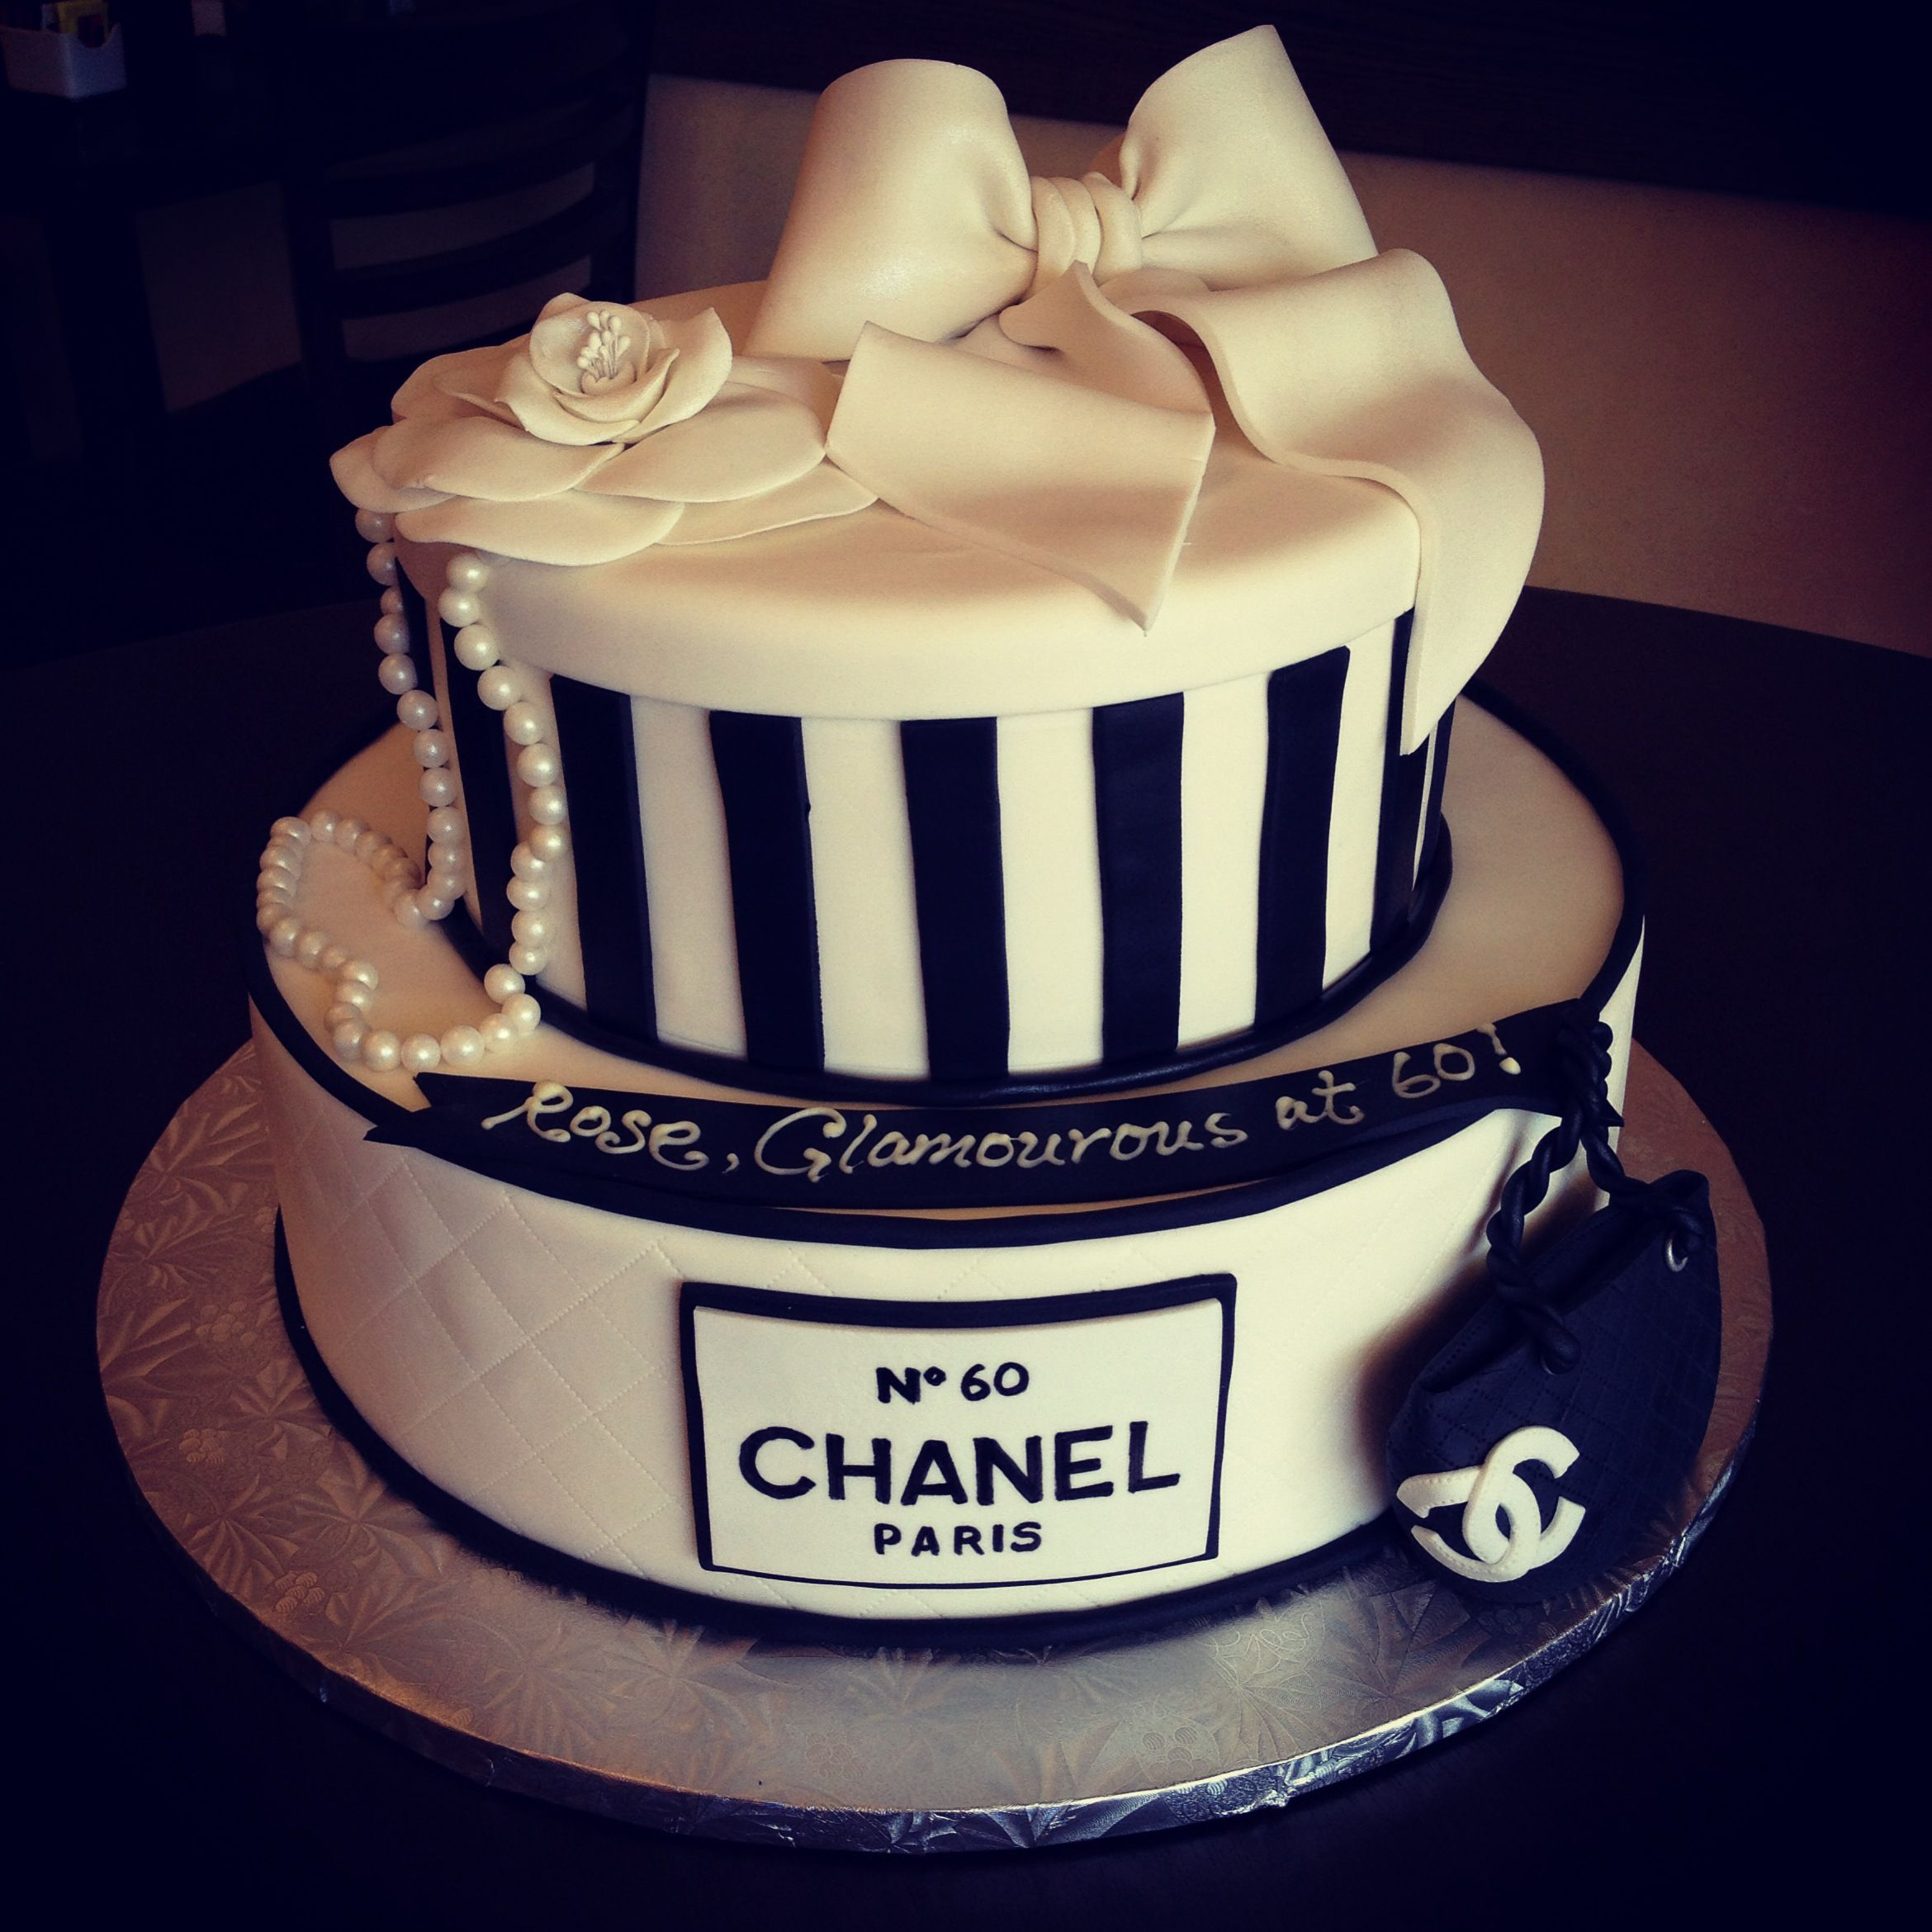 Chanel Couture Birthday Cake Www.cafeattila.com …